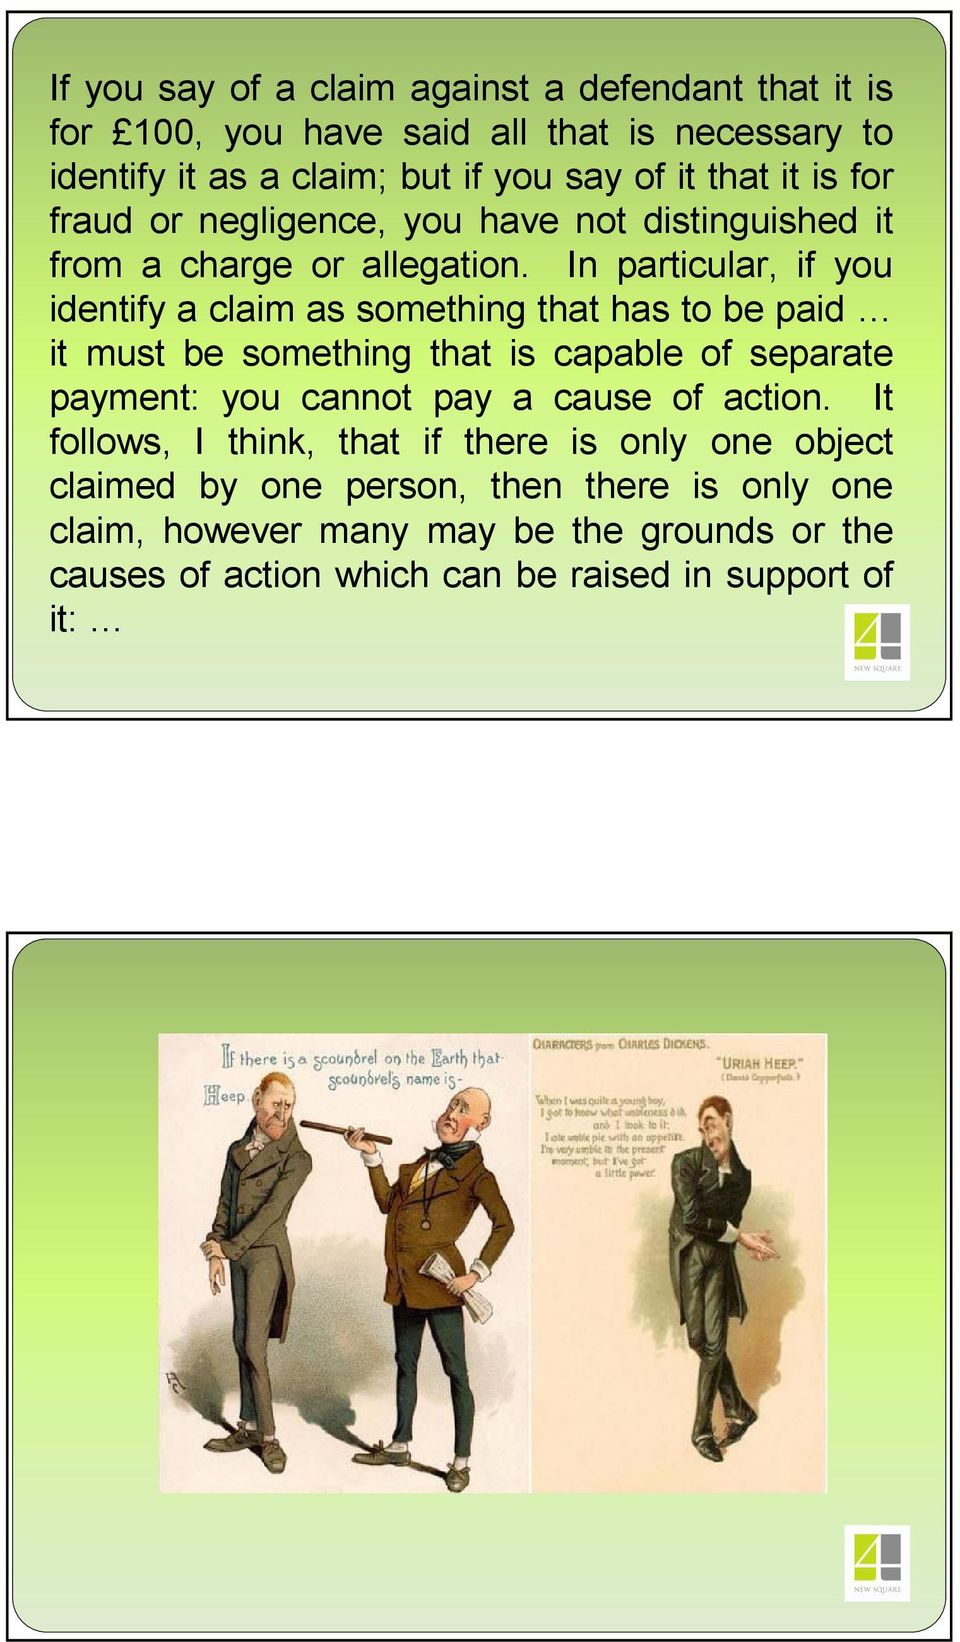 In particular, if you identify a claim as something that has to be paid it must be something that is capable of separate payment: you cannot pay a